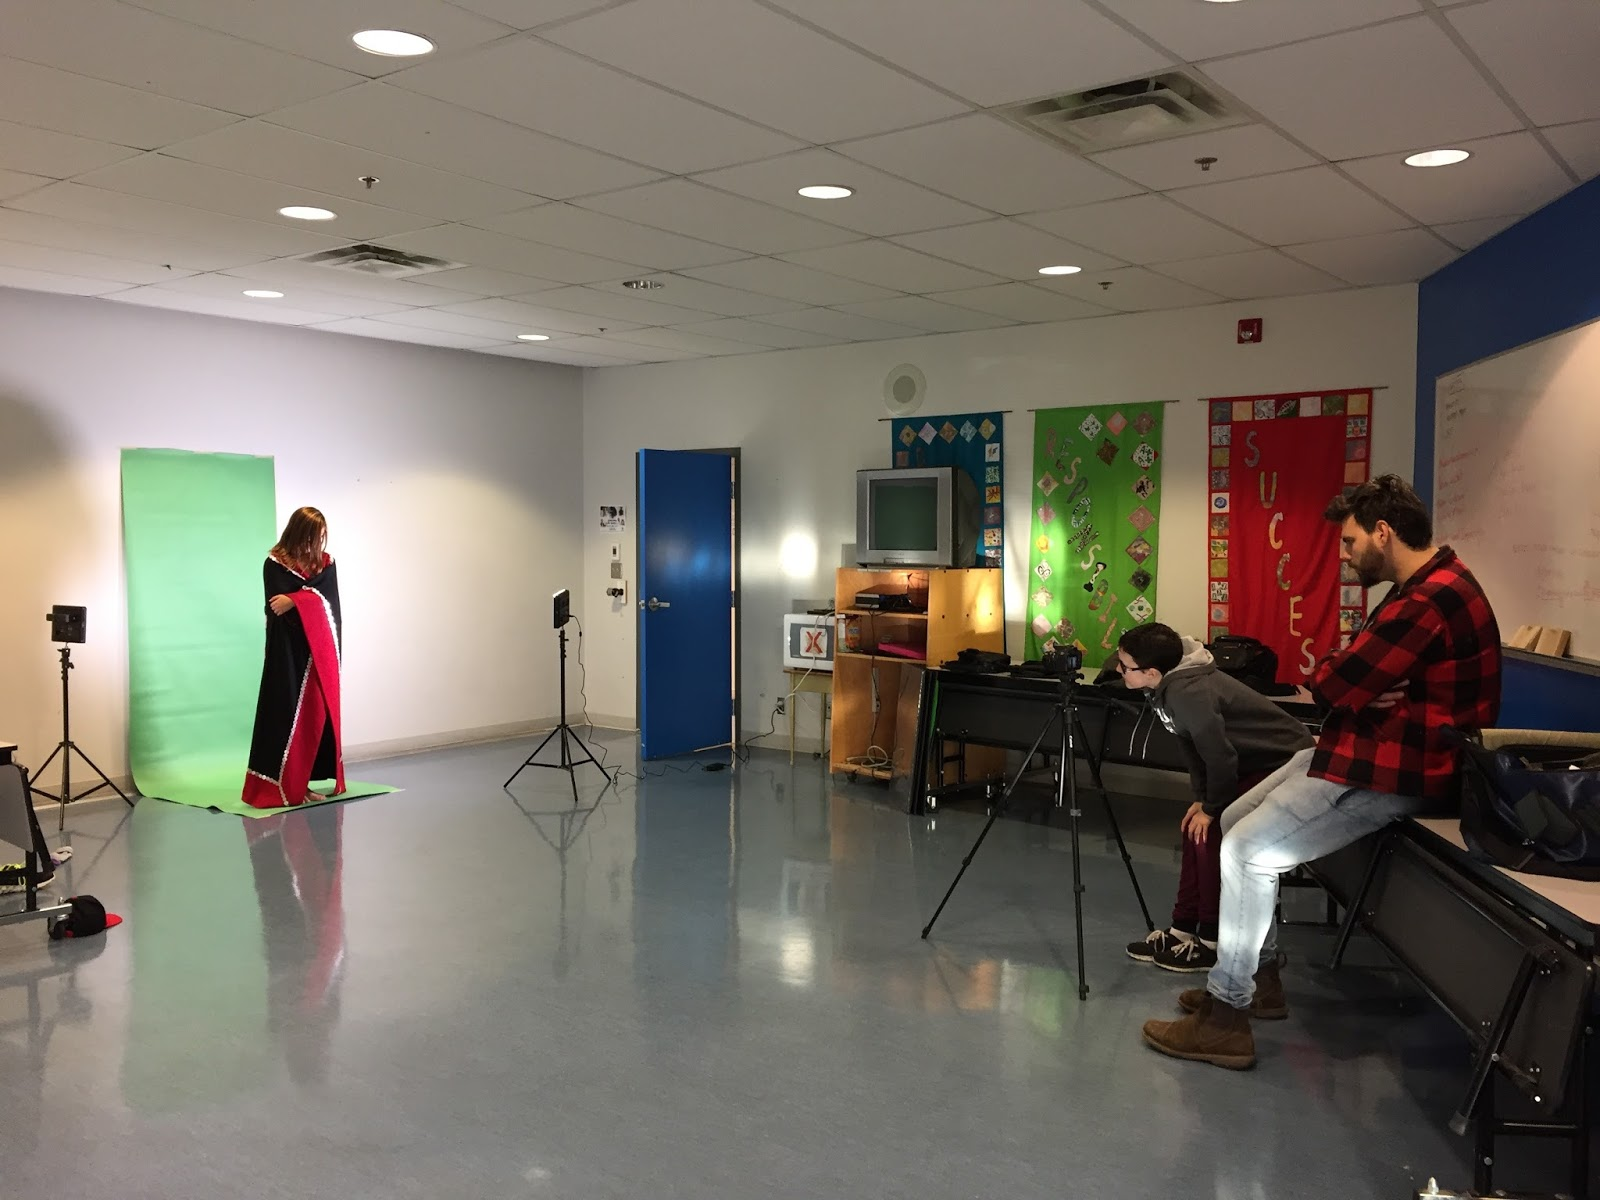 Mackenzie 'captures' the ghost on 'green screen'